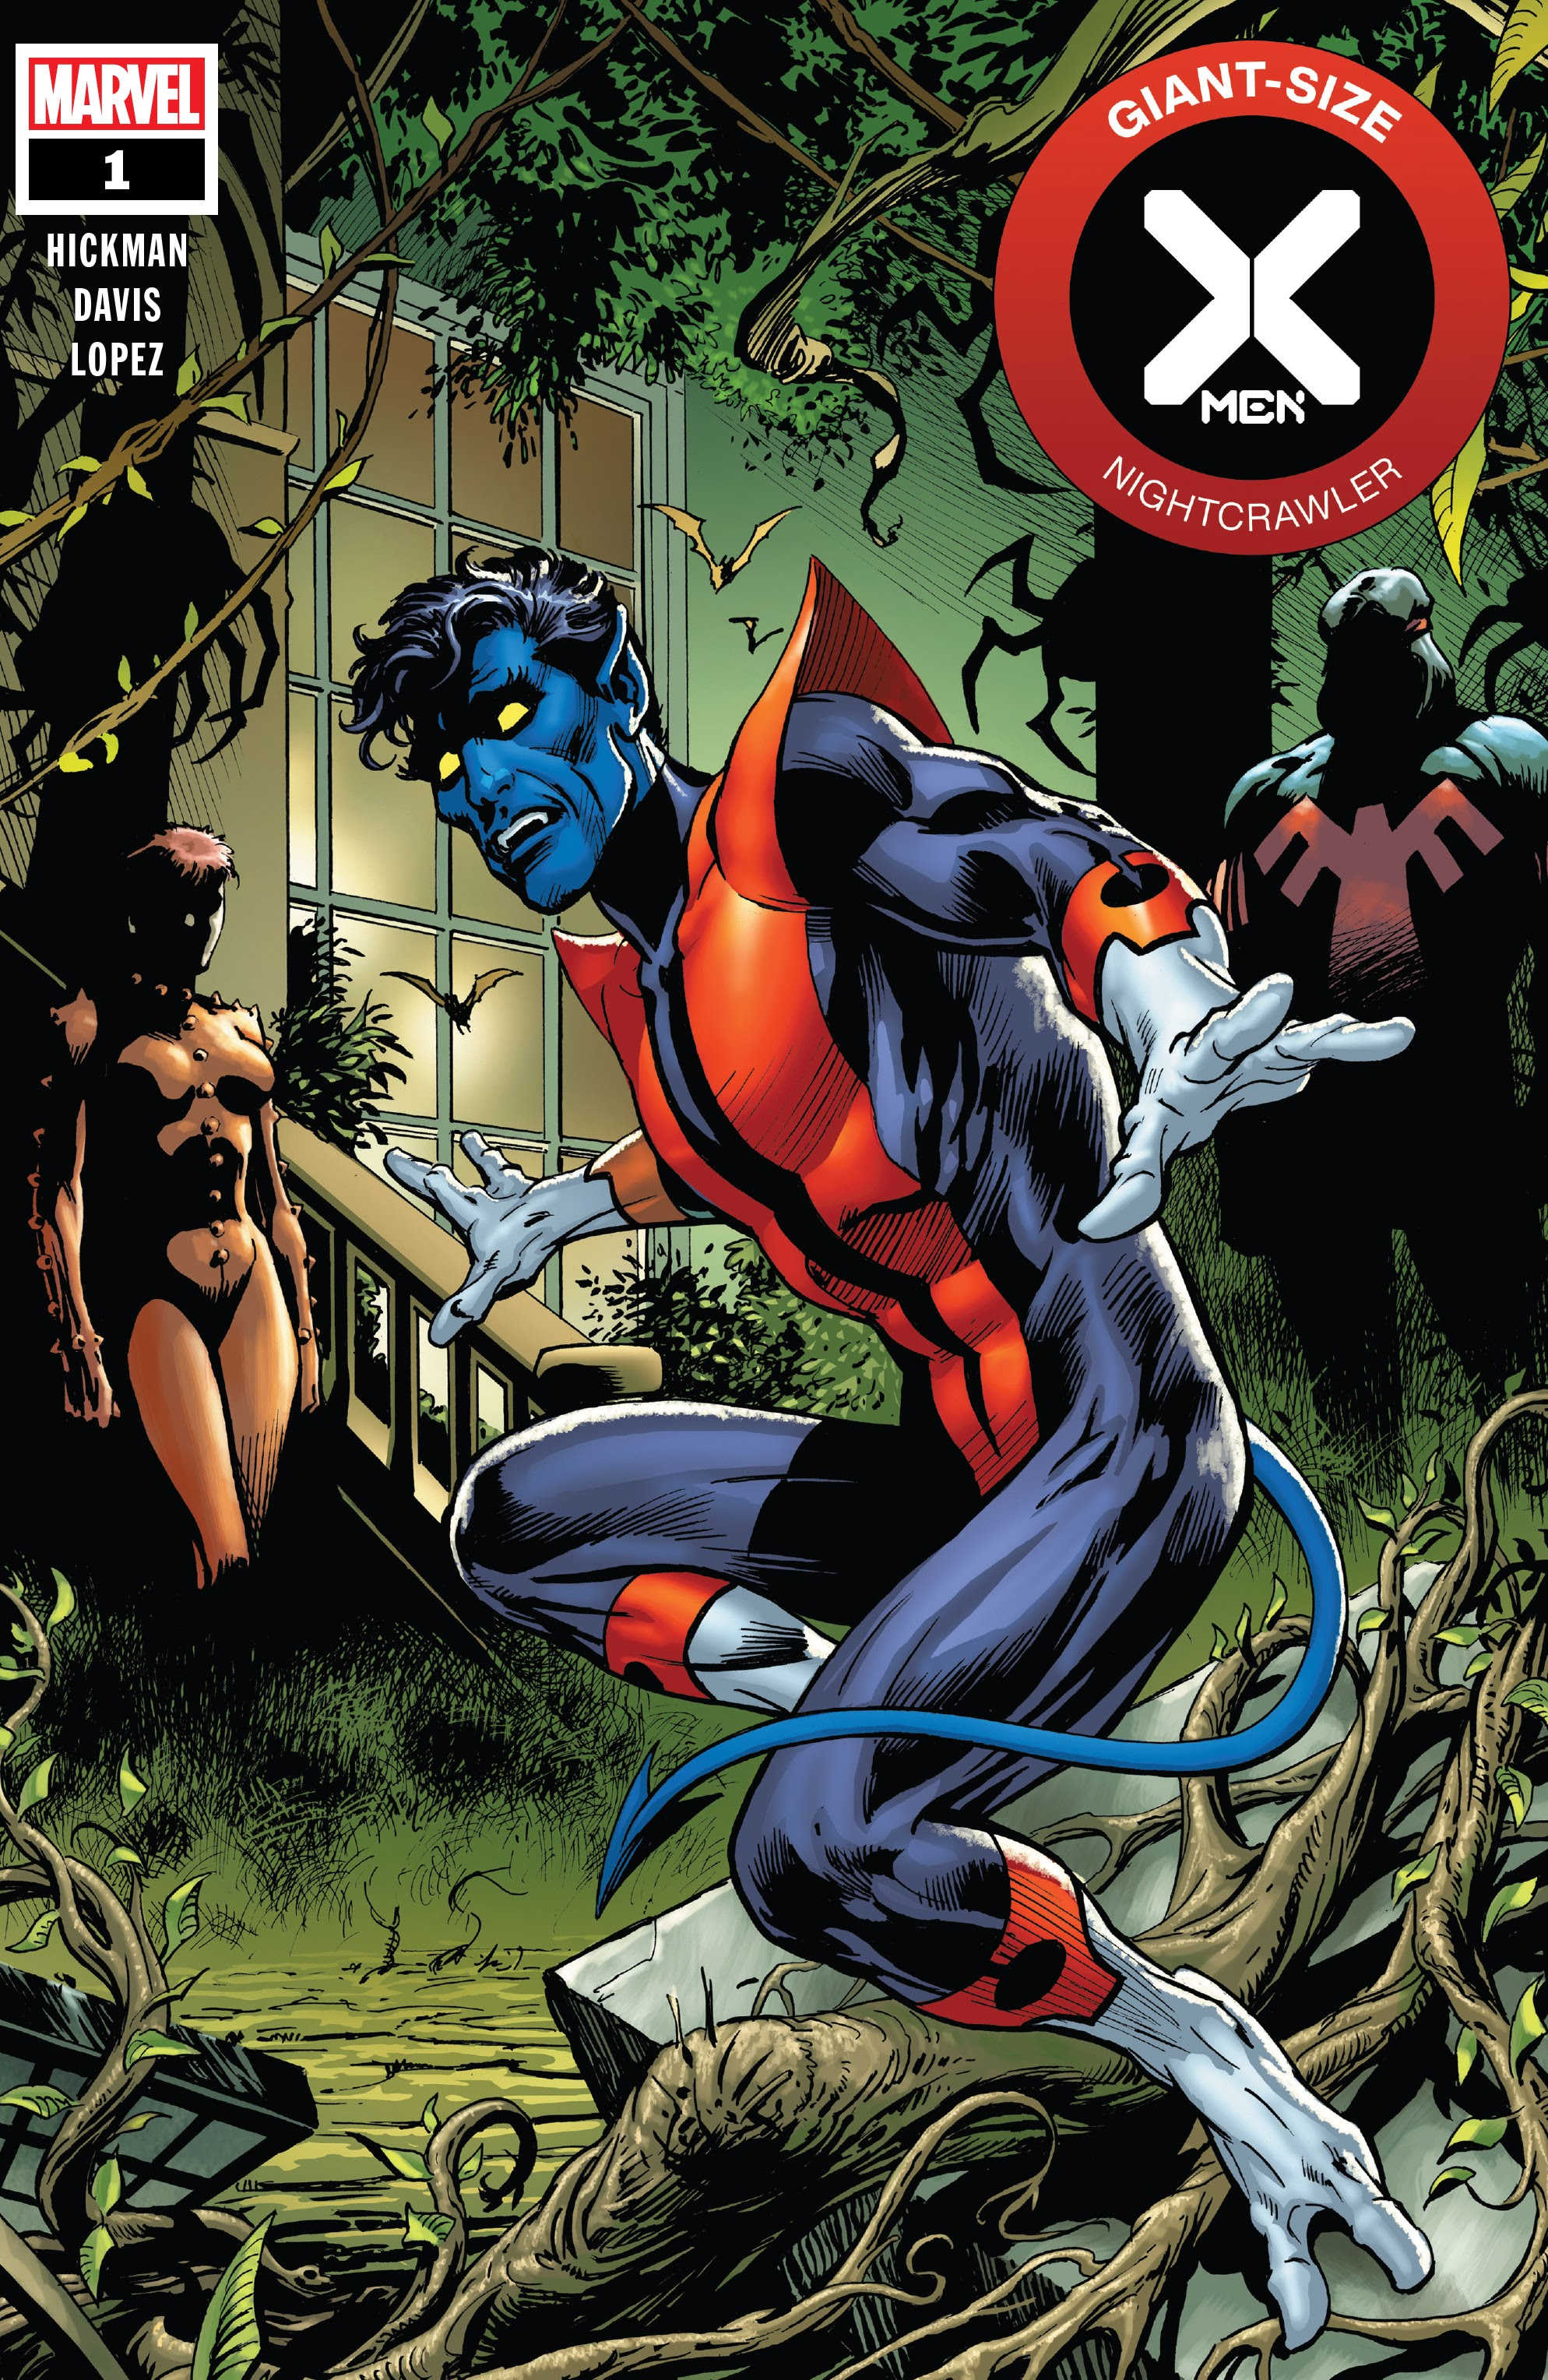 Giant-Size X-Men (2020) Nightcrawler Page 1